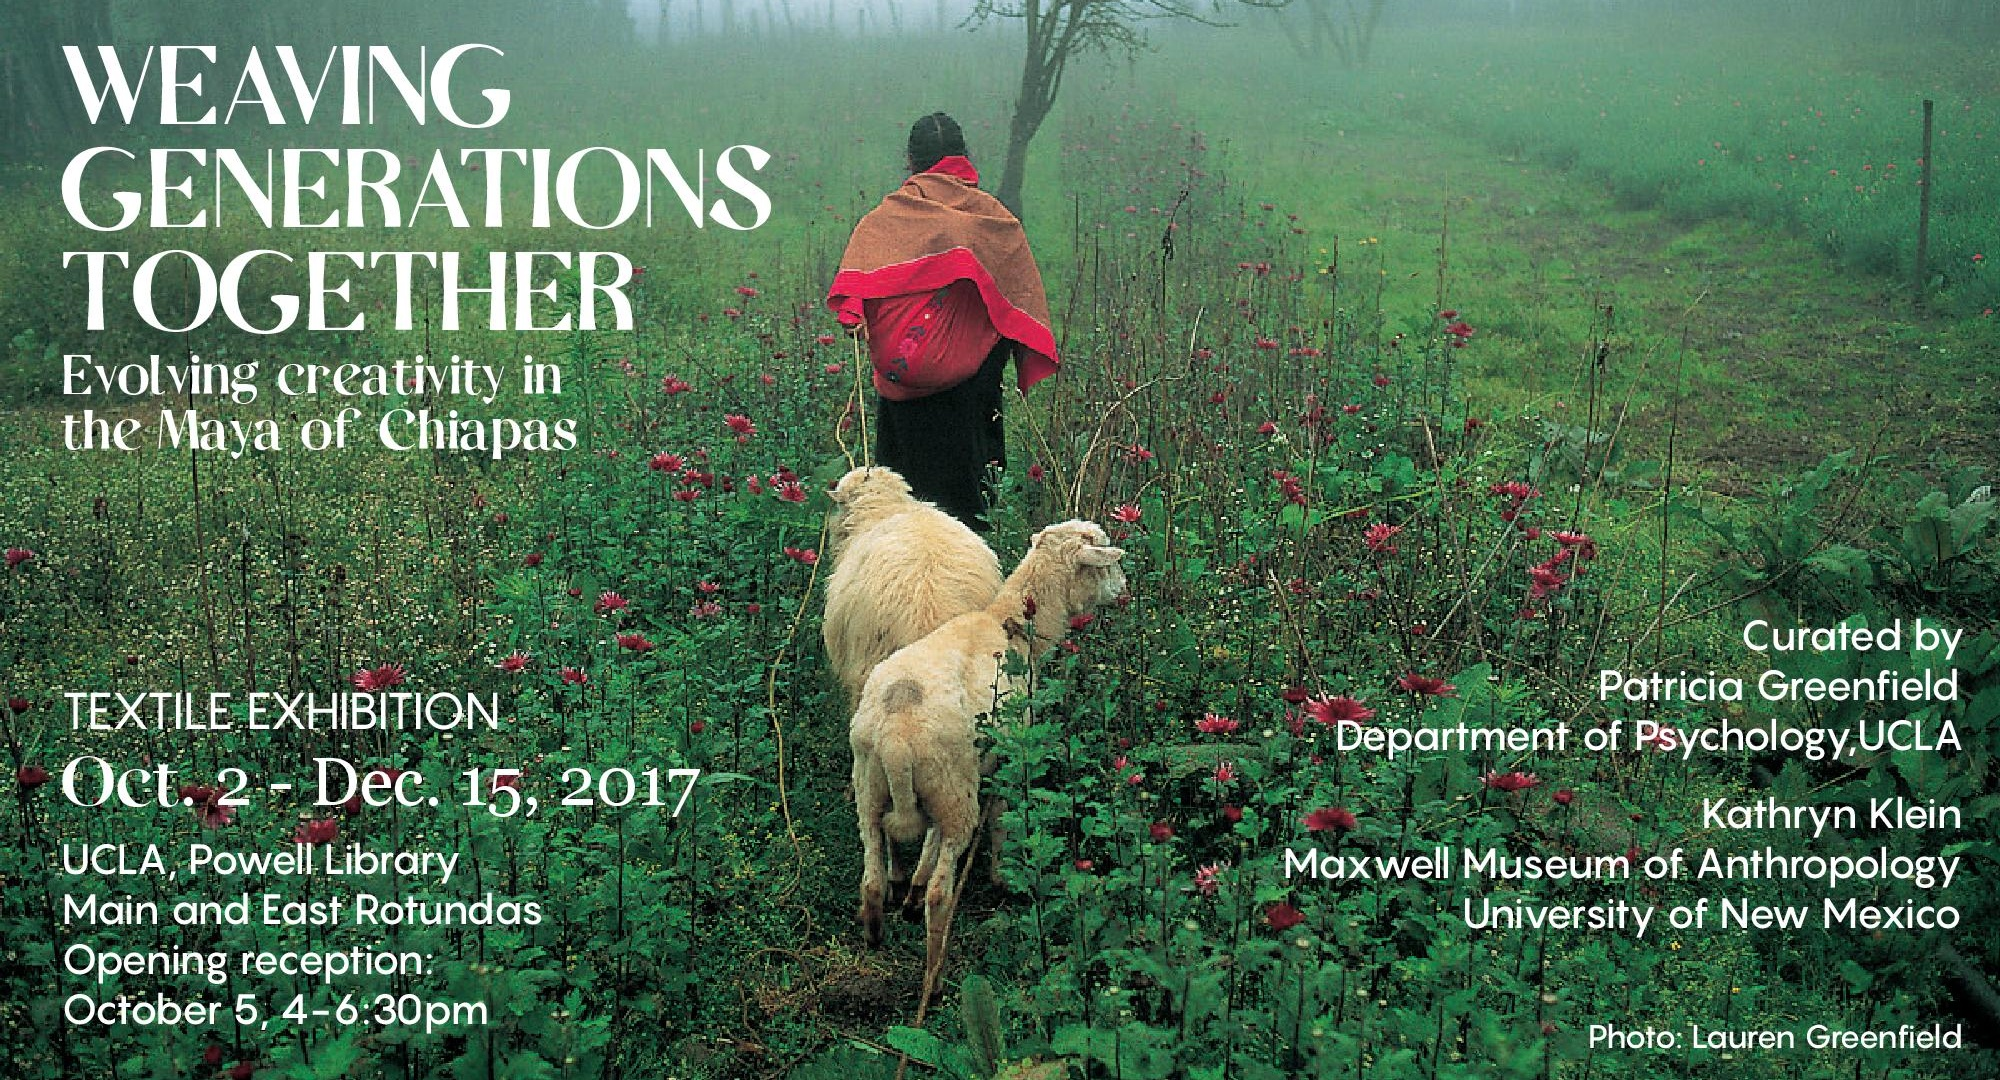 """Weaving Generations Together"" exhibit flyer, featuring a background photograph of a Maya woman leading her livestock through a meadow"